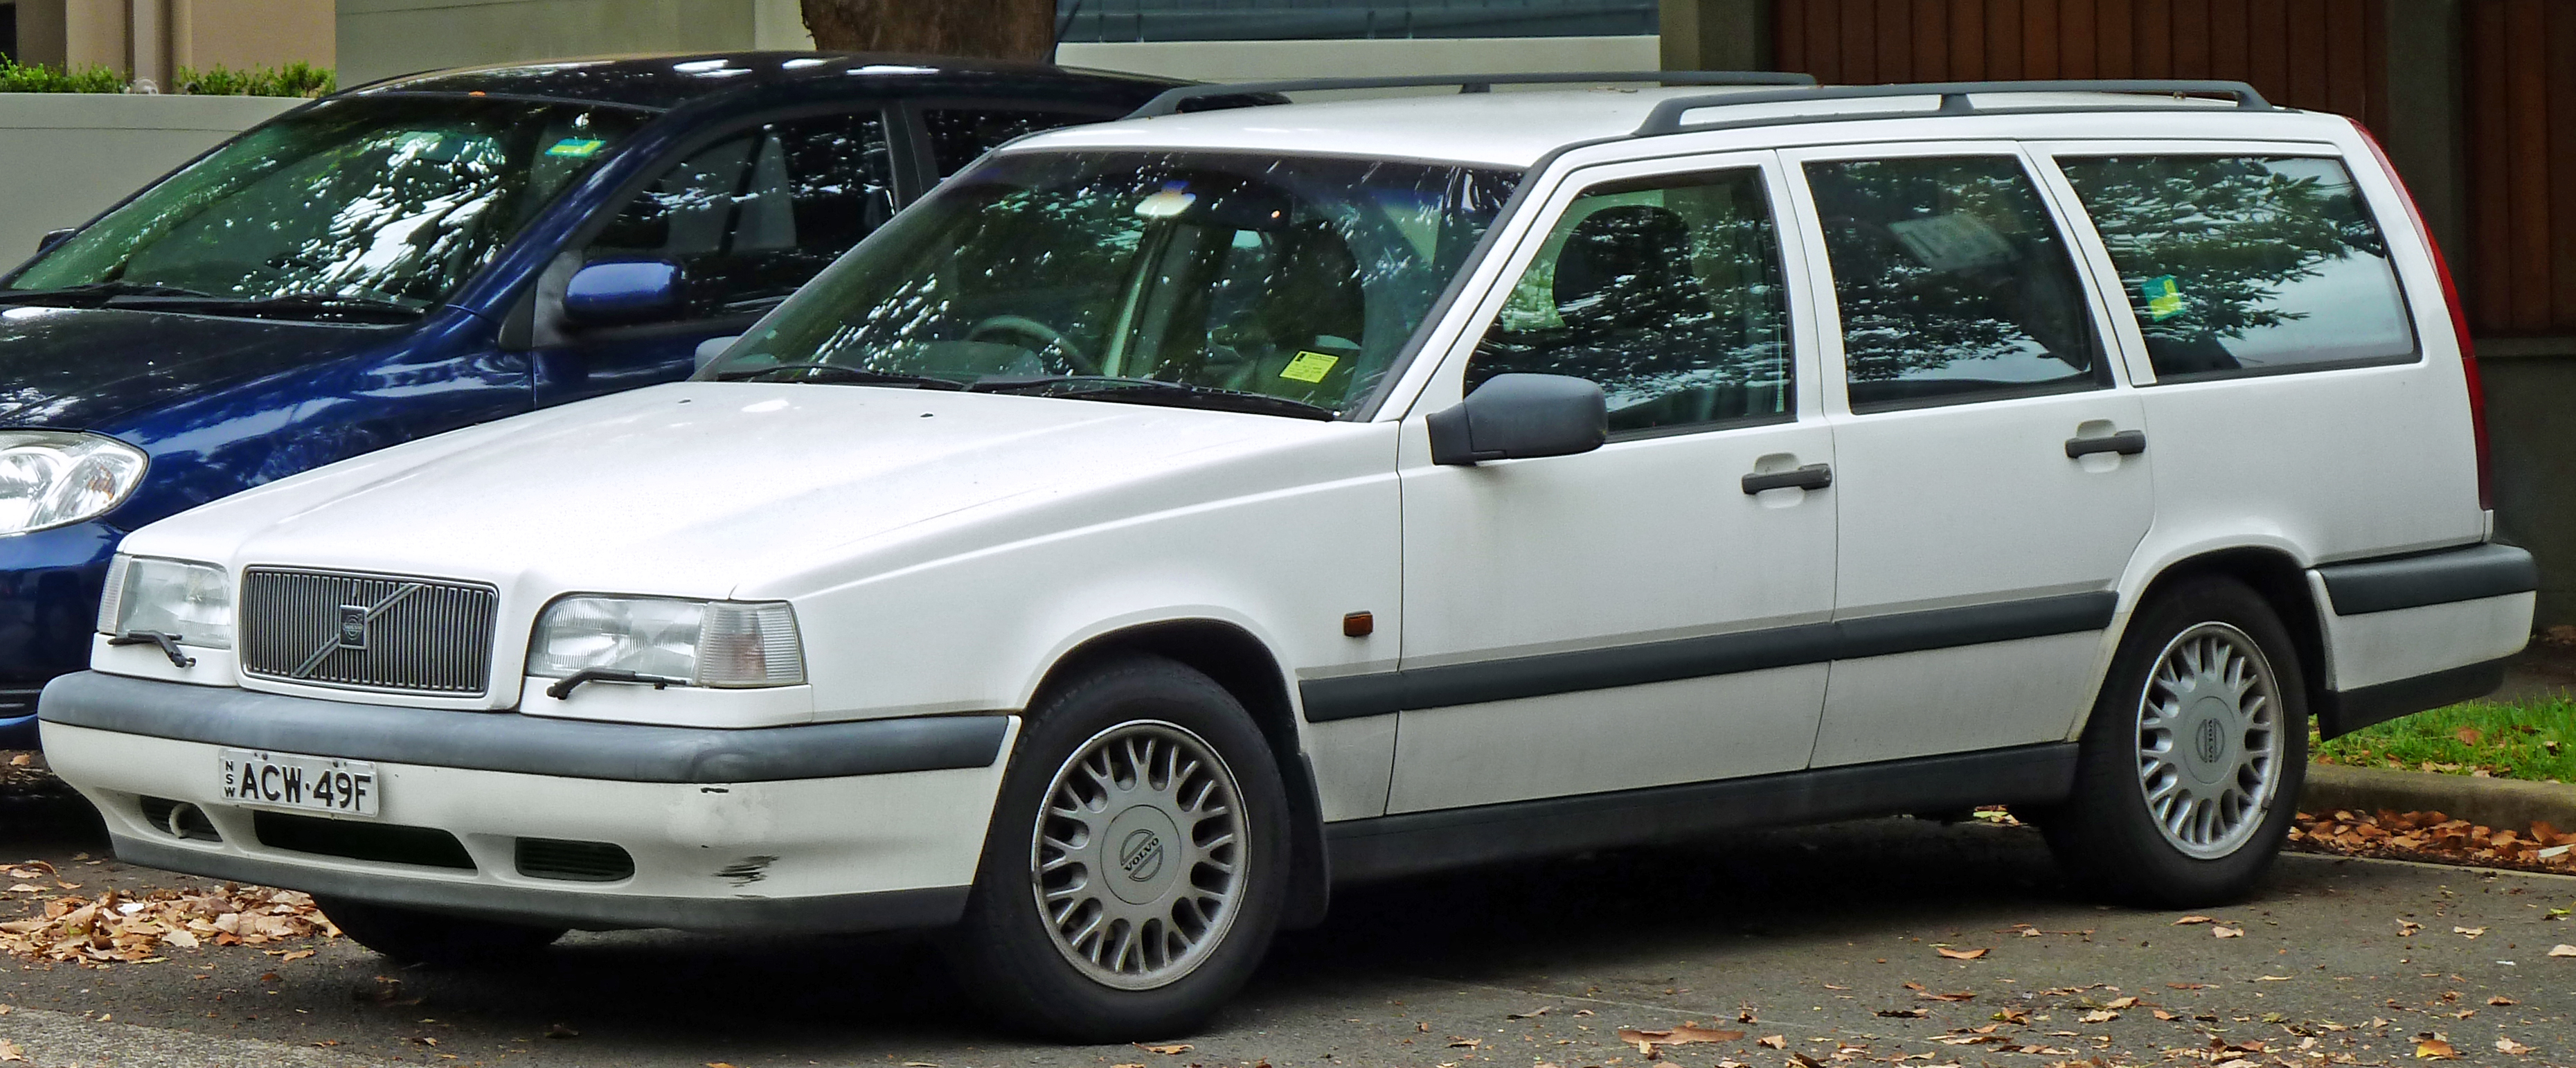 File:1994-1997 Volvo 850 SE 2.5 station wagon (2011-01-13).jpg - Wikimedia Commons